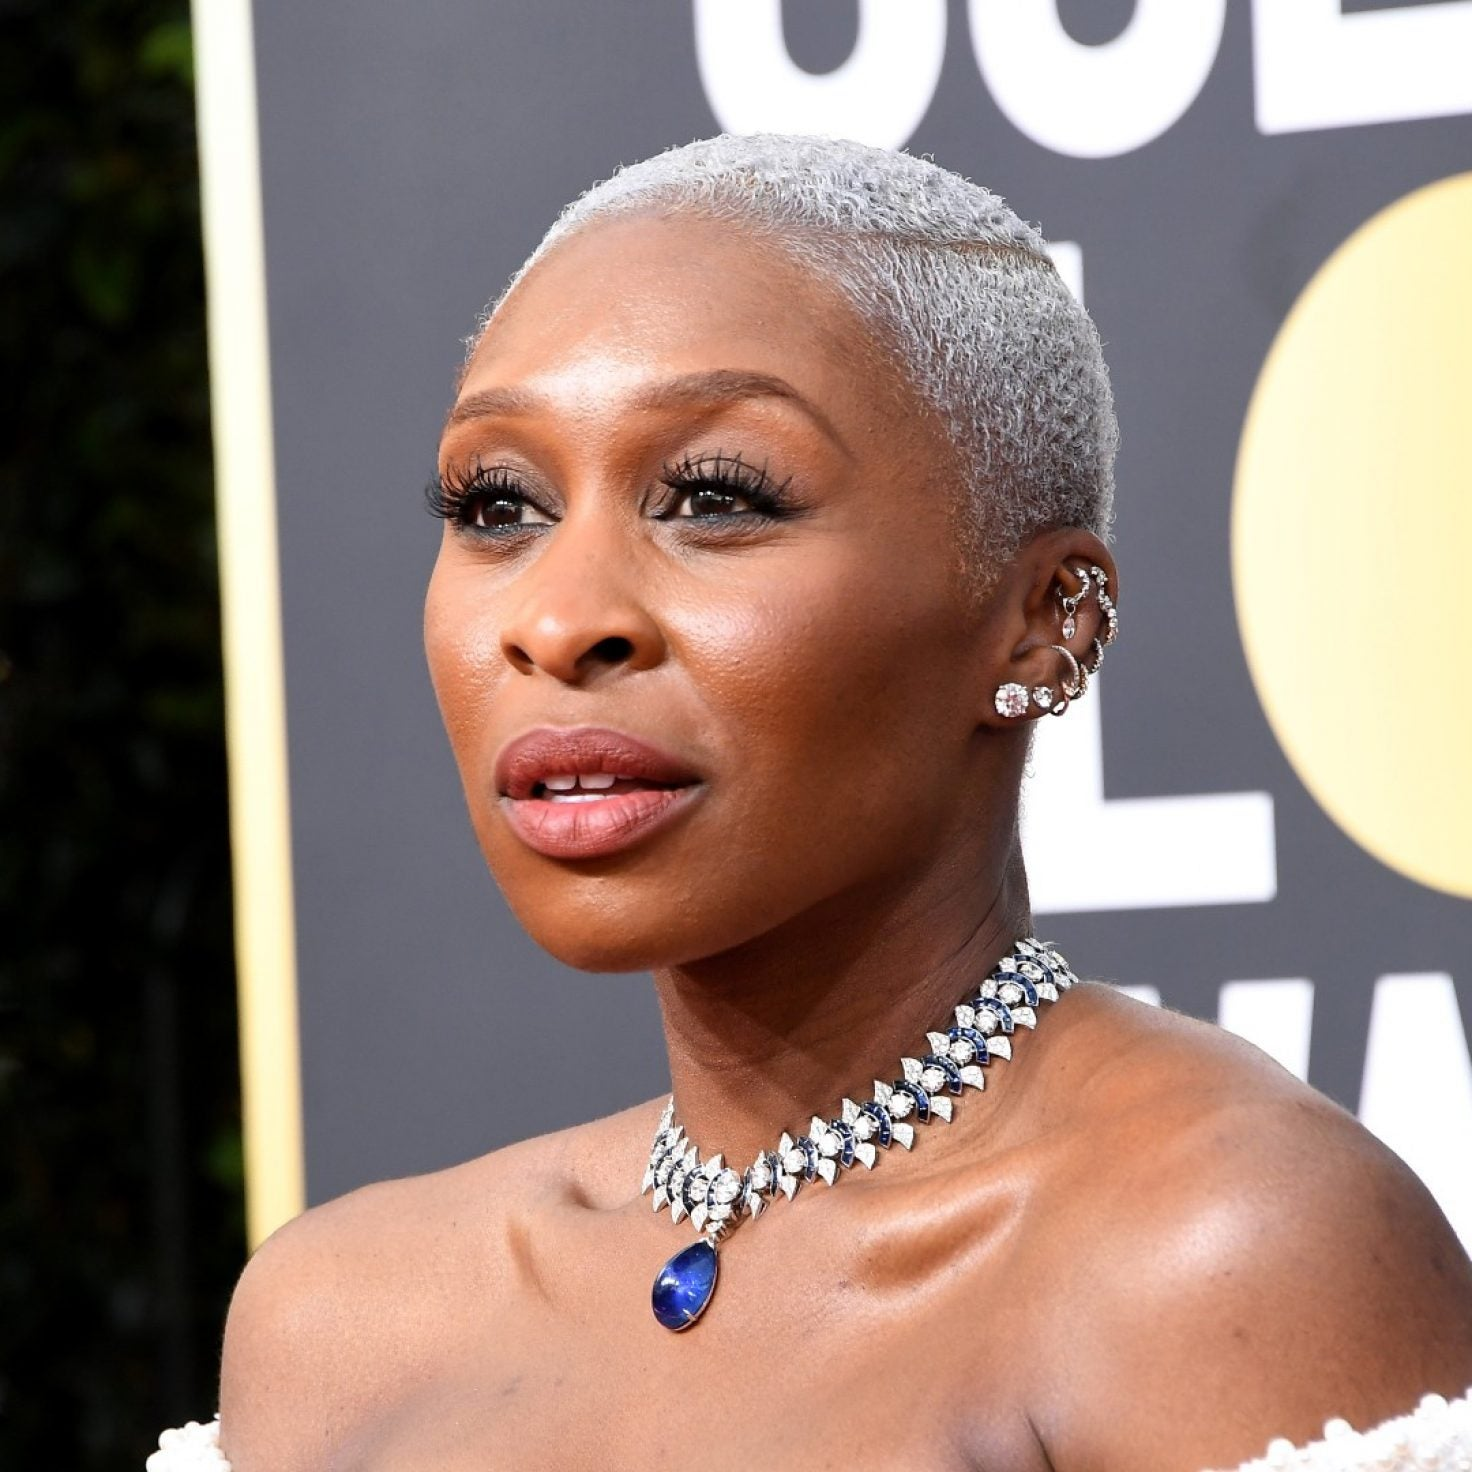 Cynthia Erivo, Wesley Snipes, Billy Porter And More Celebrities Share The Cheat Code To Leveling Up In 2020